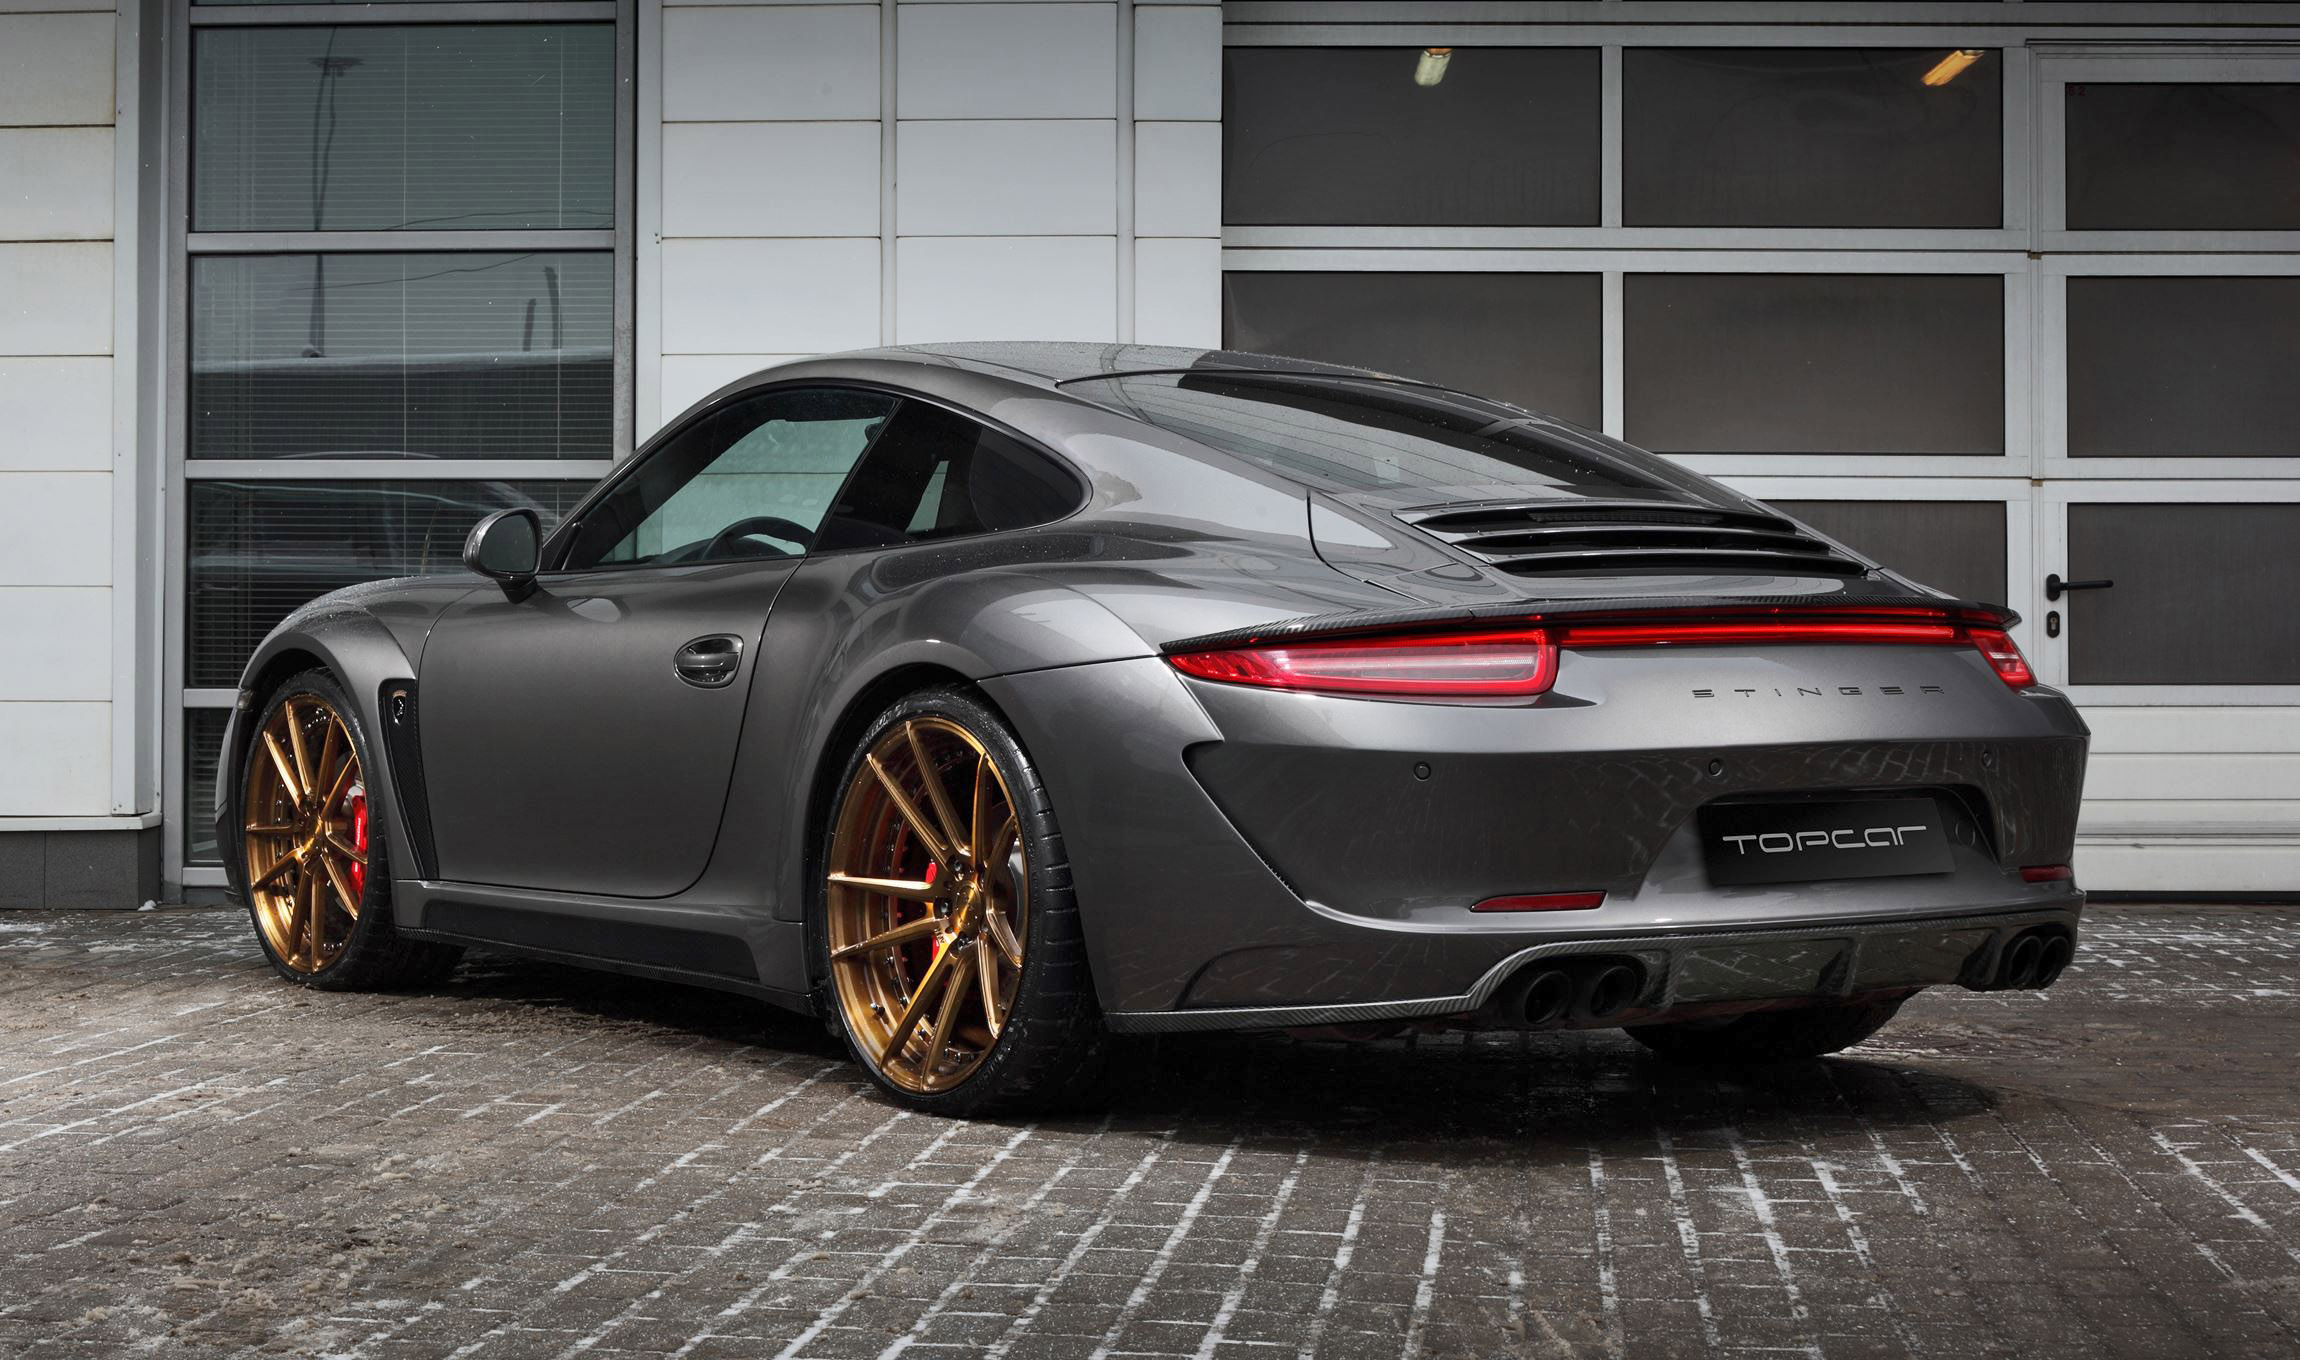 2016 Porsche 911 C4s By Topcar Makes Pre Geneva Debut